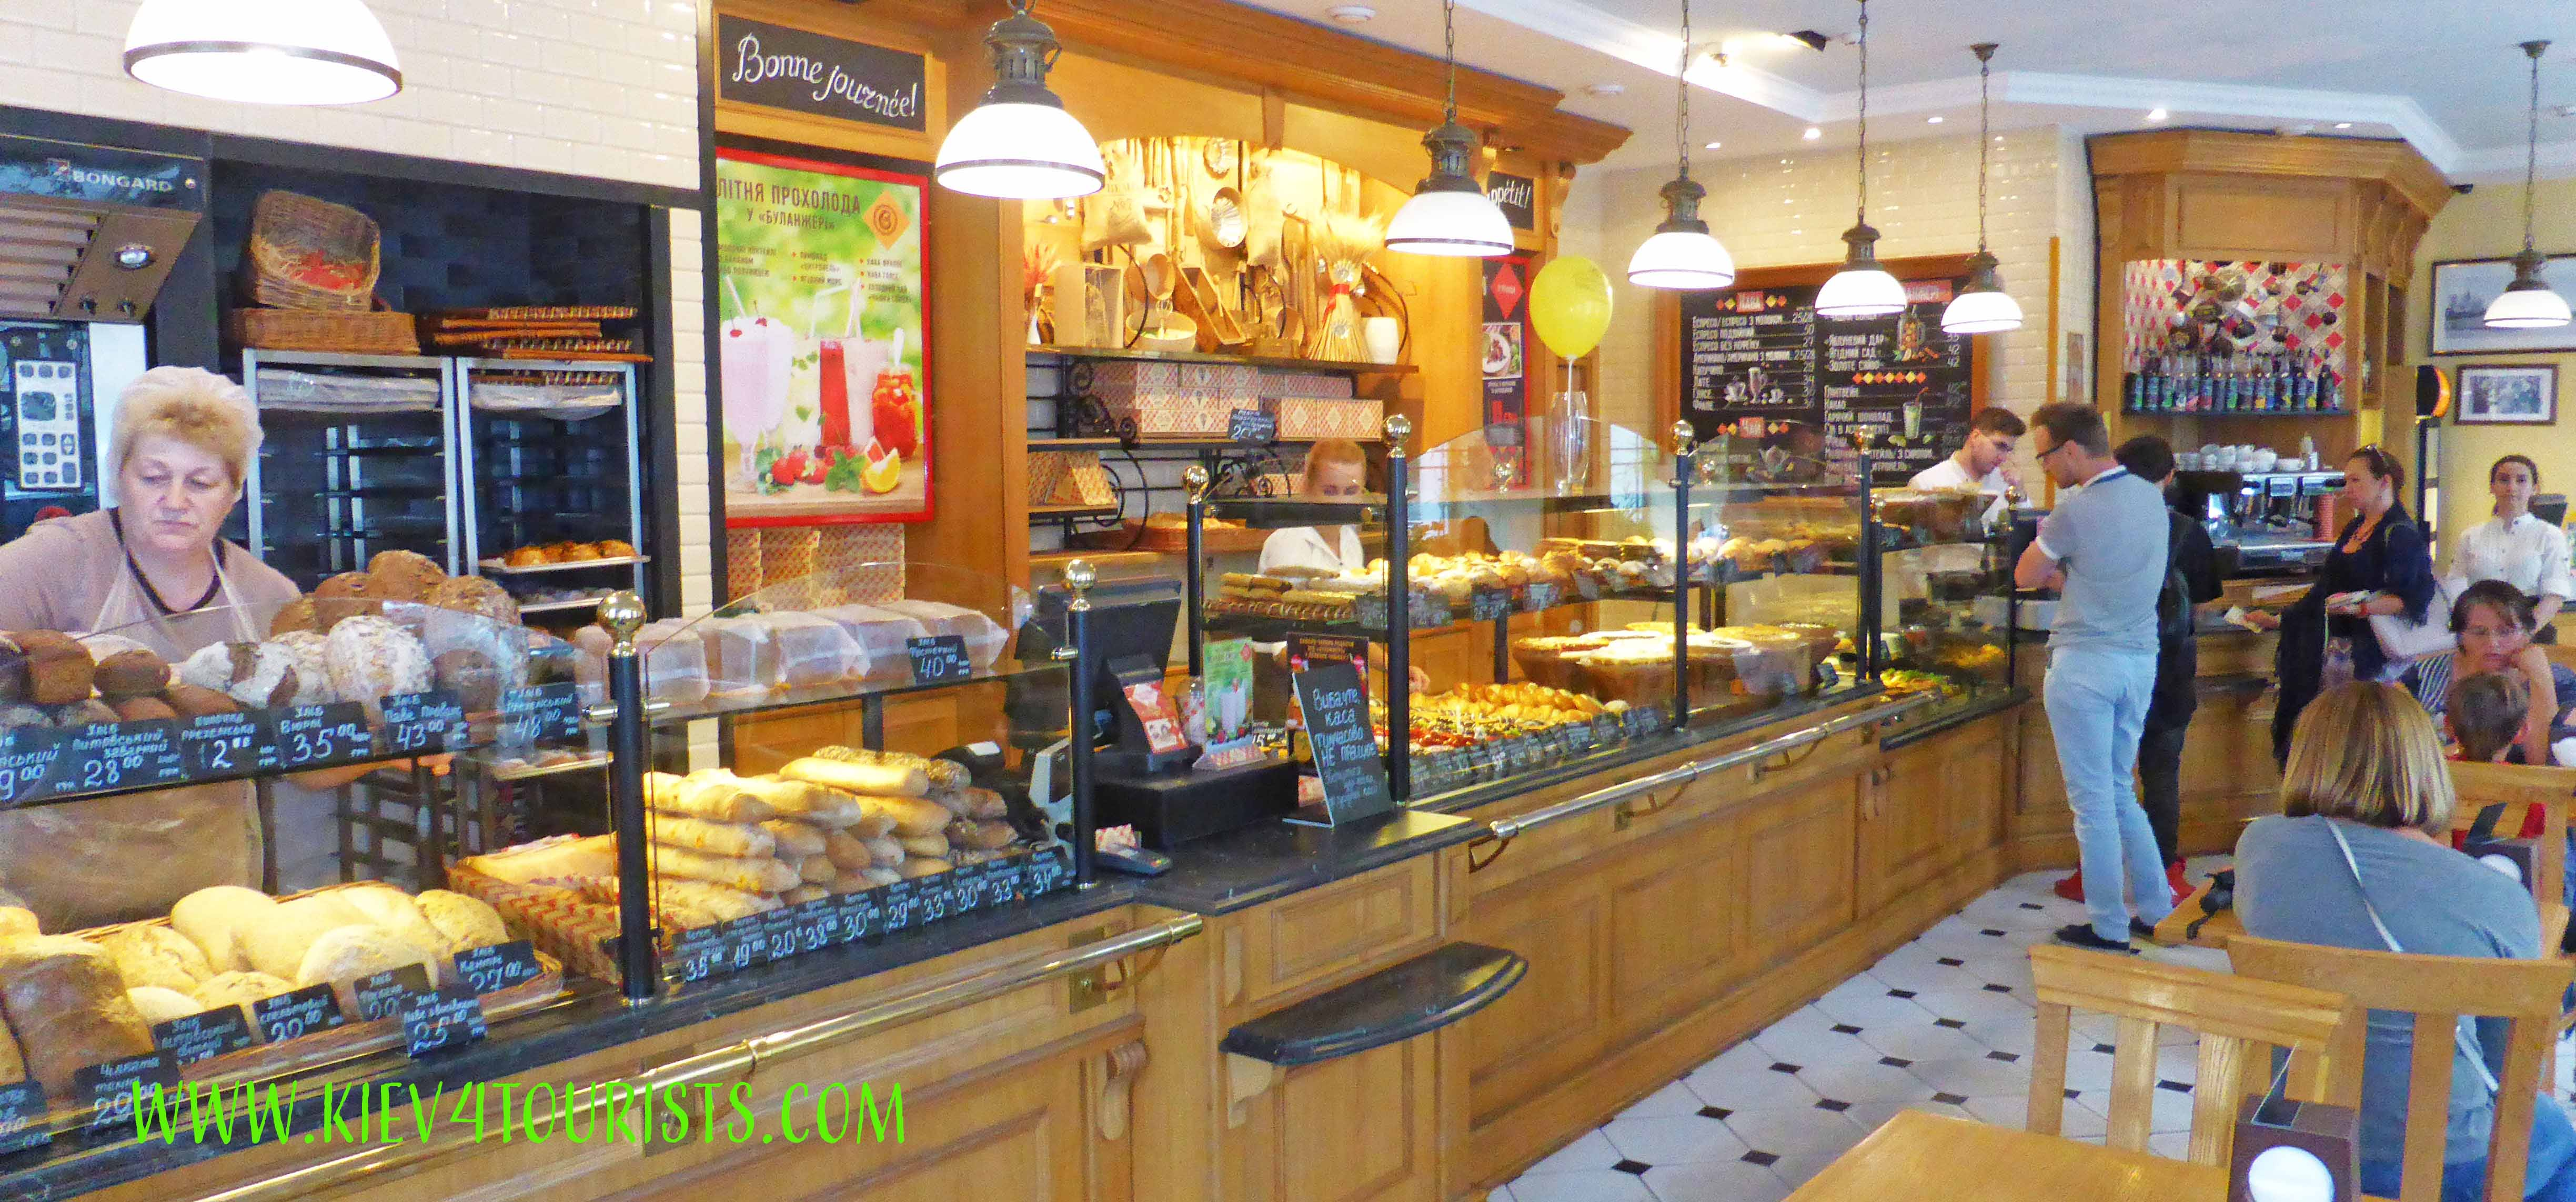 Breads & Pastries